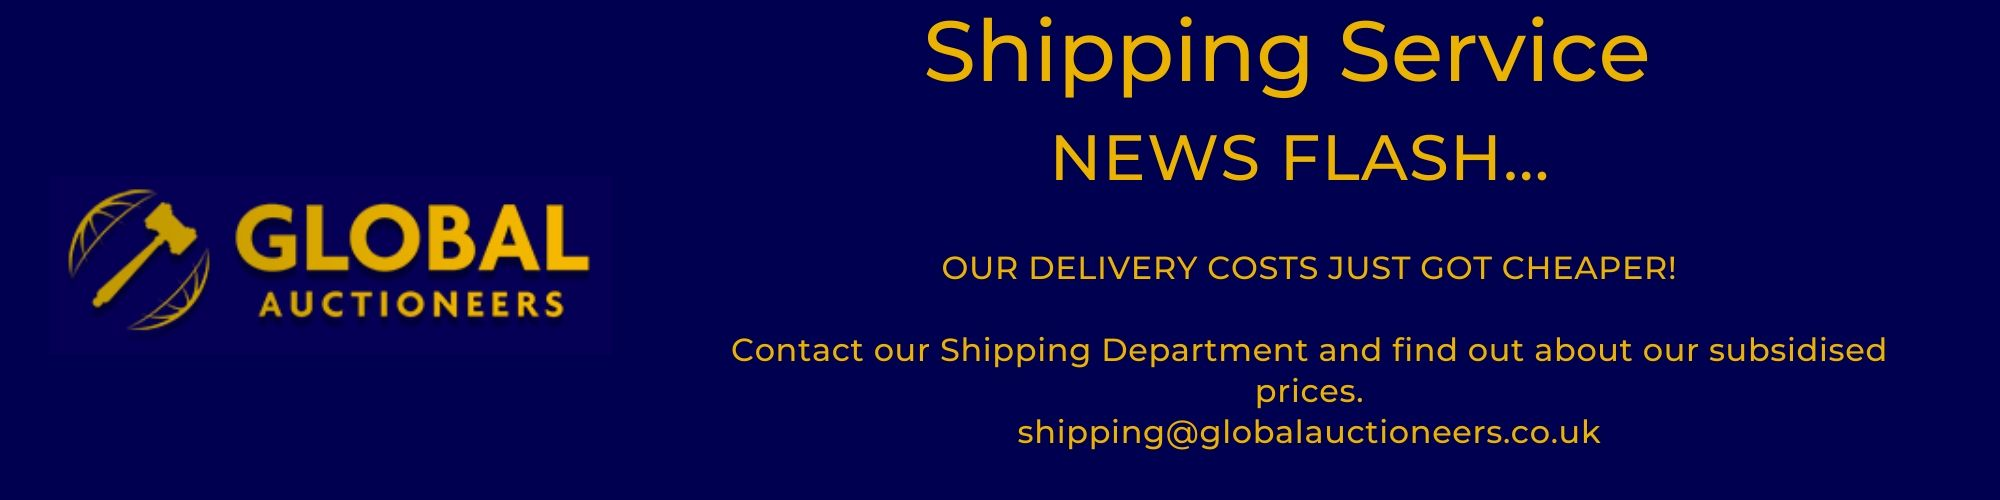 Subsidised Shipping Costs